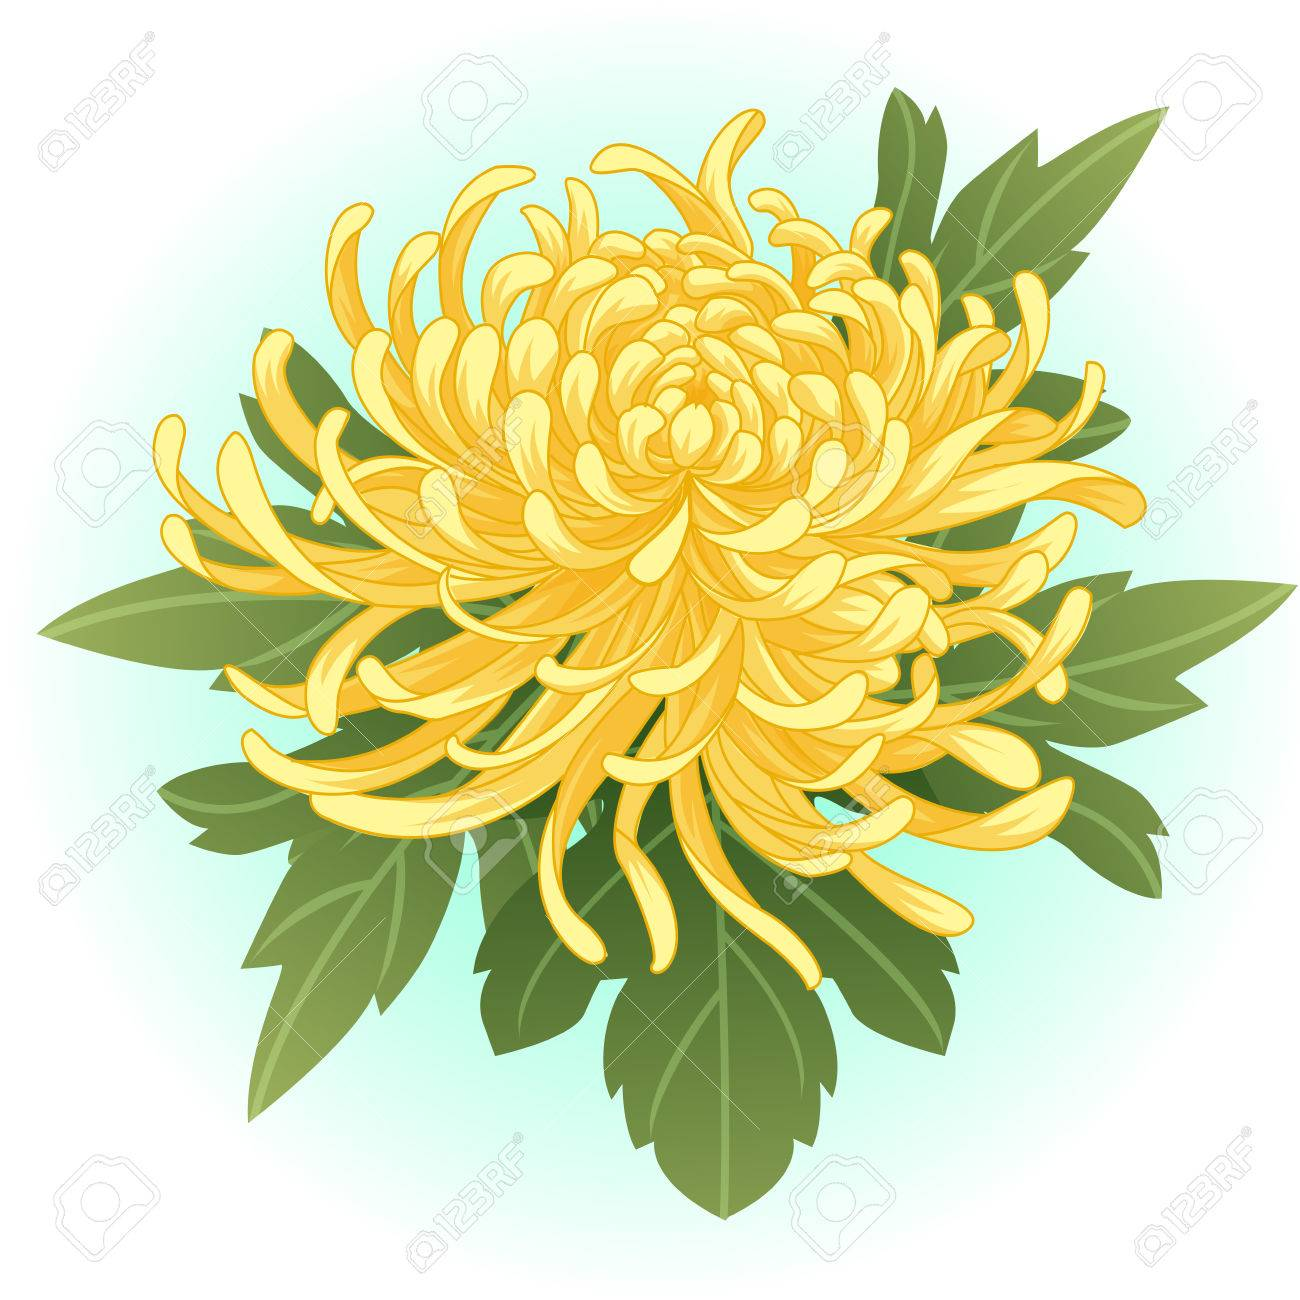 Yellow Chrysanthemum Flower Illustration Royalty Free Cliparts